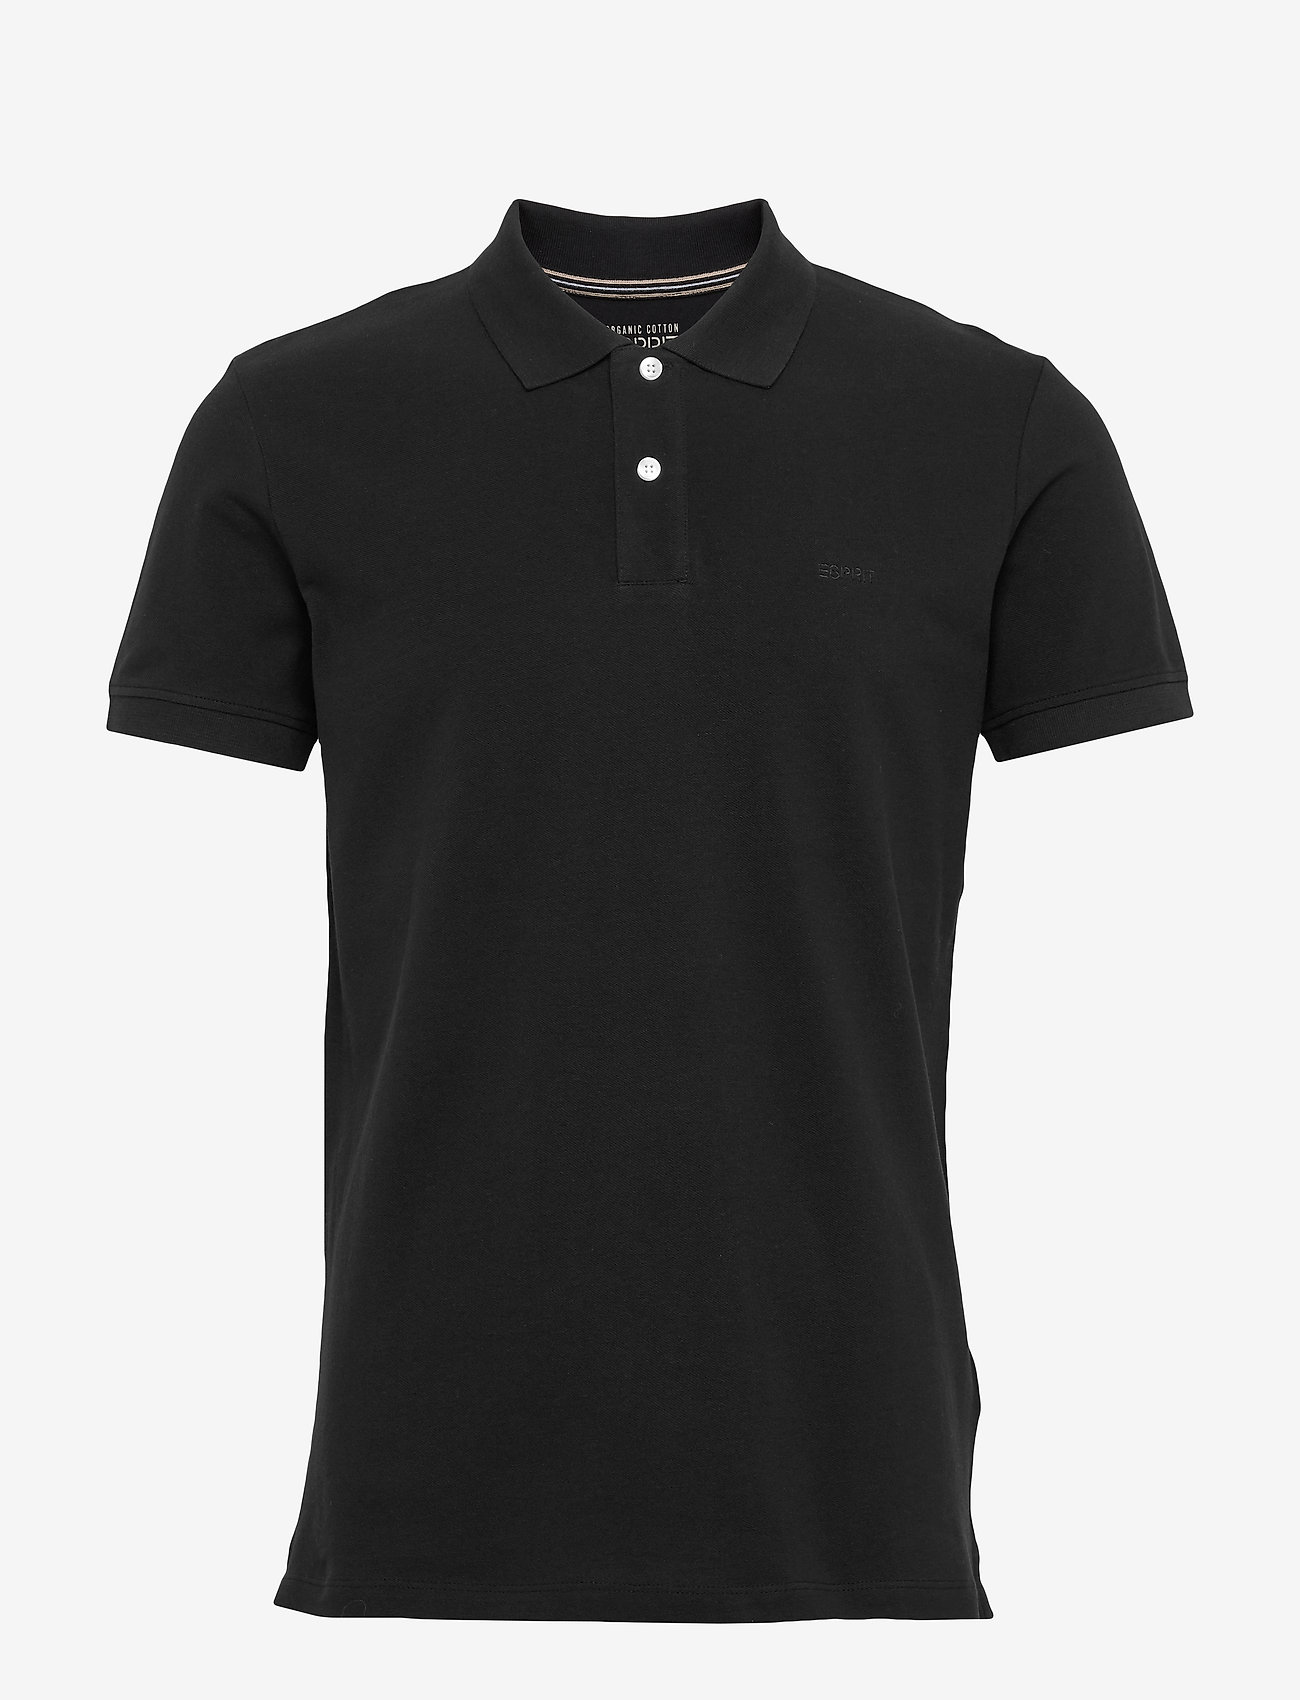 Esprit Casual - Polo shirts - korte mouwen - black - 0